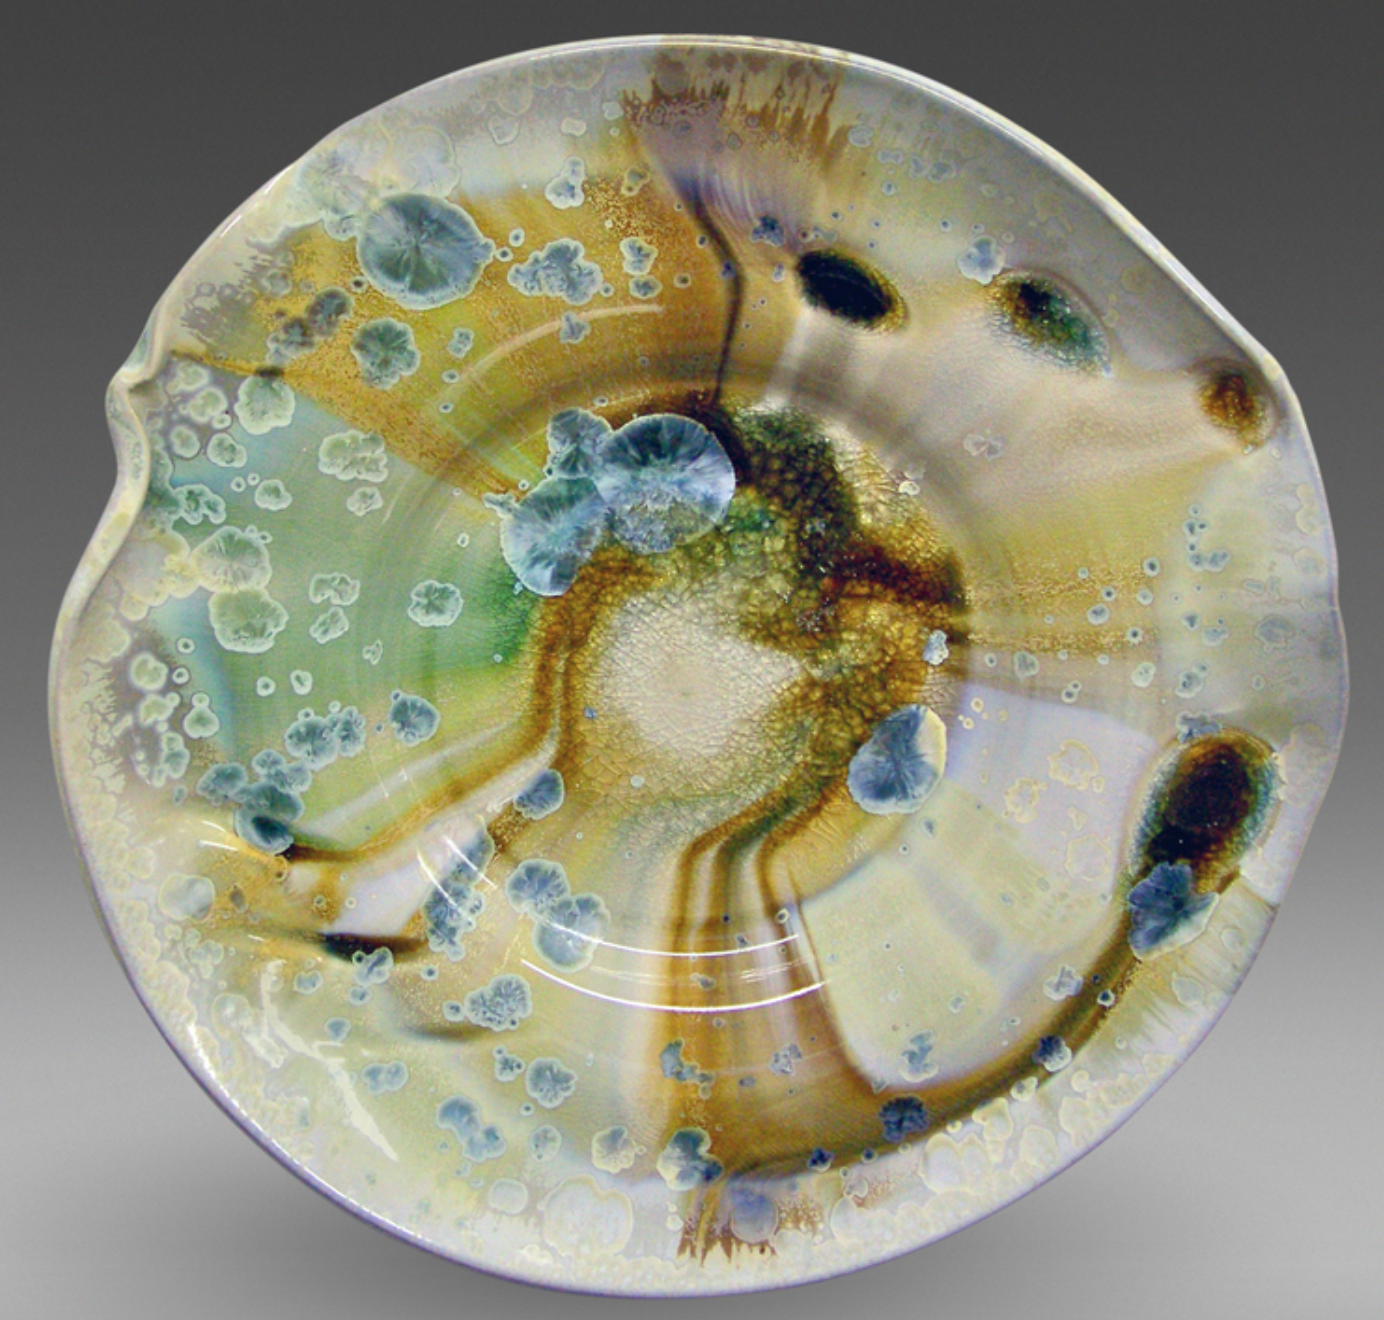 Craig McMillin - http://studiomcmillin.comI individually wheel throw each piece of stoneware clay and manipulate while still damp. After bisque firing, the work is either gas or electric fired to cone 10 with crystalline glazes